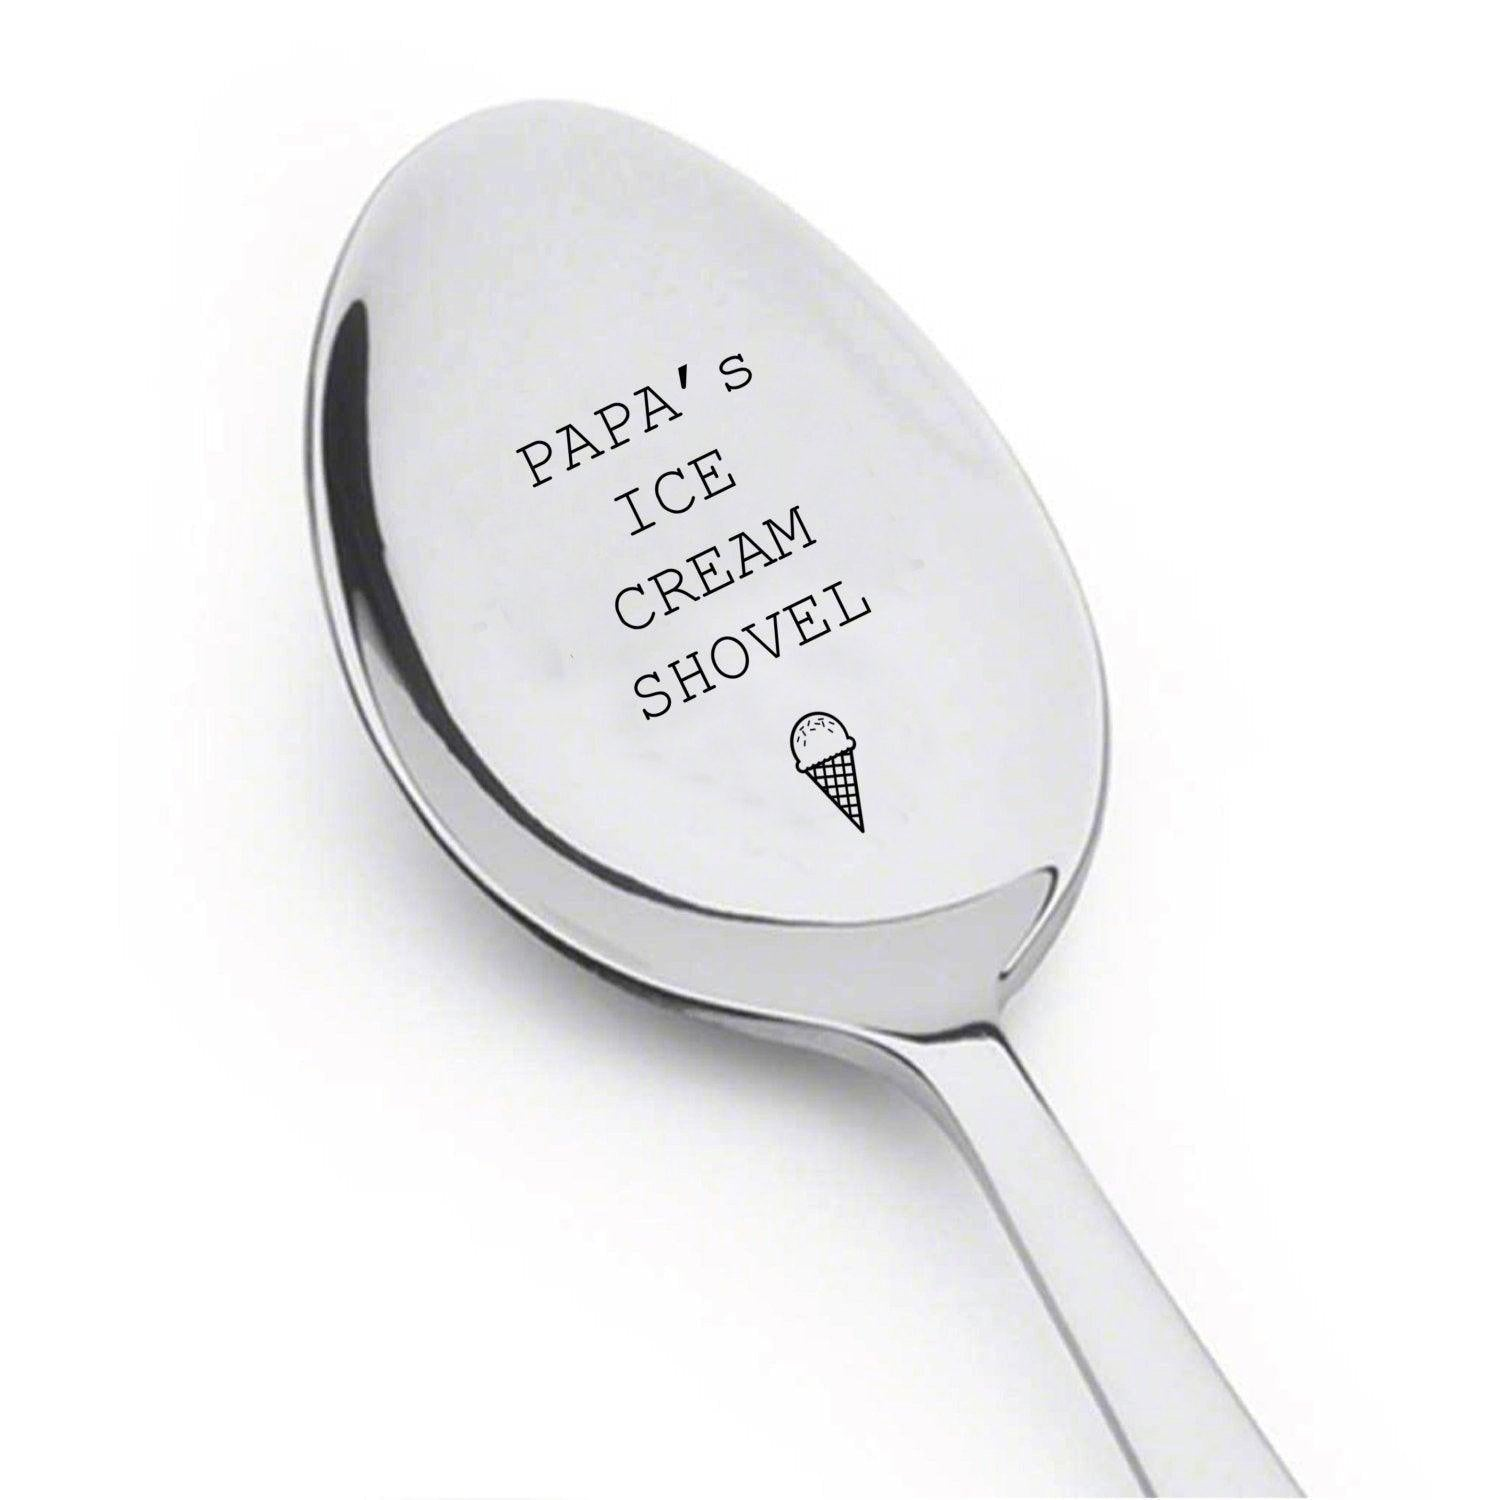 Papa's ice cream shovel | Father's day gift |Spoon Gift for dad | Gift for Ice Cream Lover - BOSTON CREATIVE COMPANY